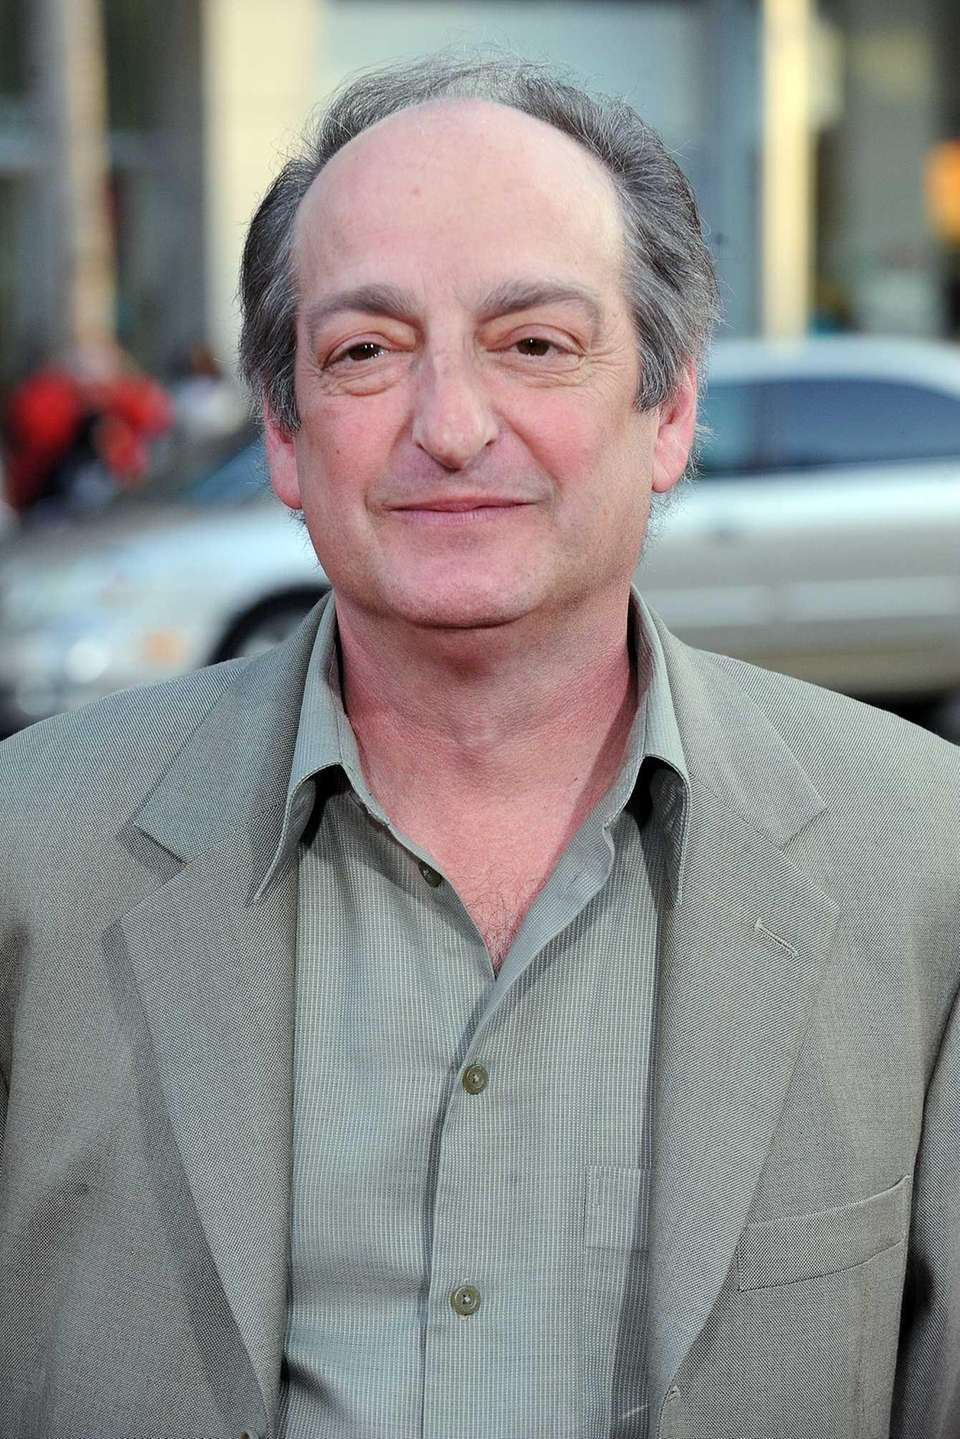 Character actor David Paymer, who has appeared in